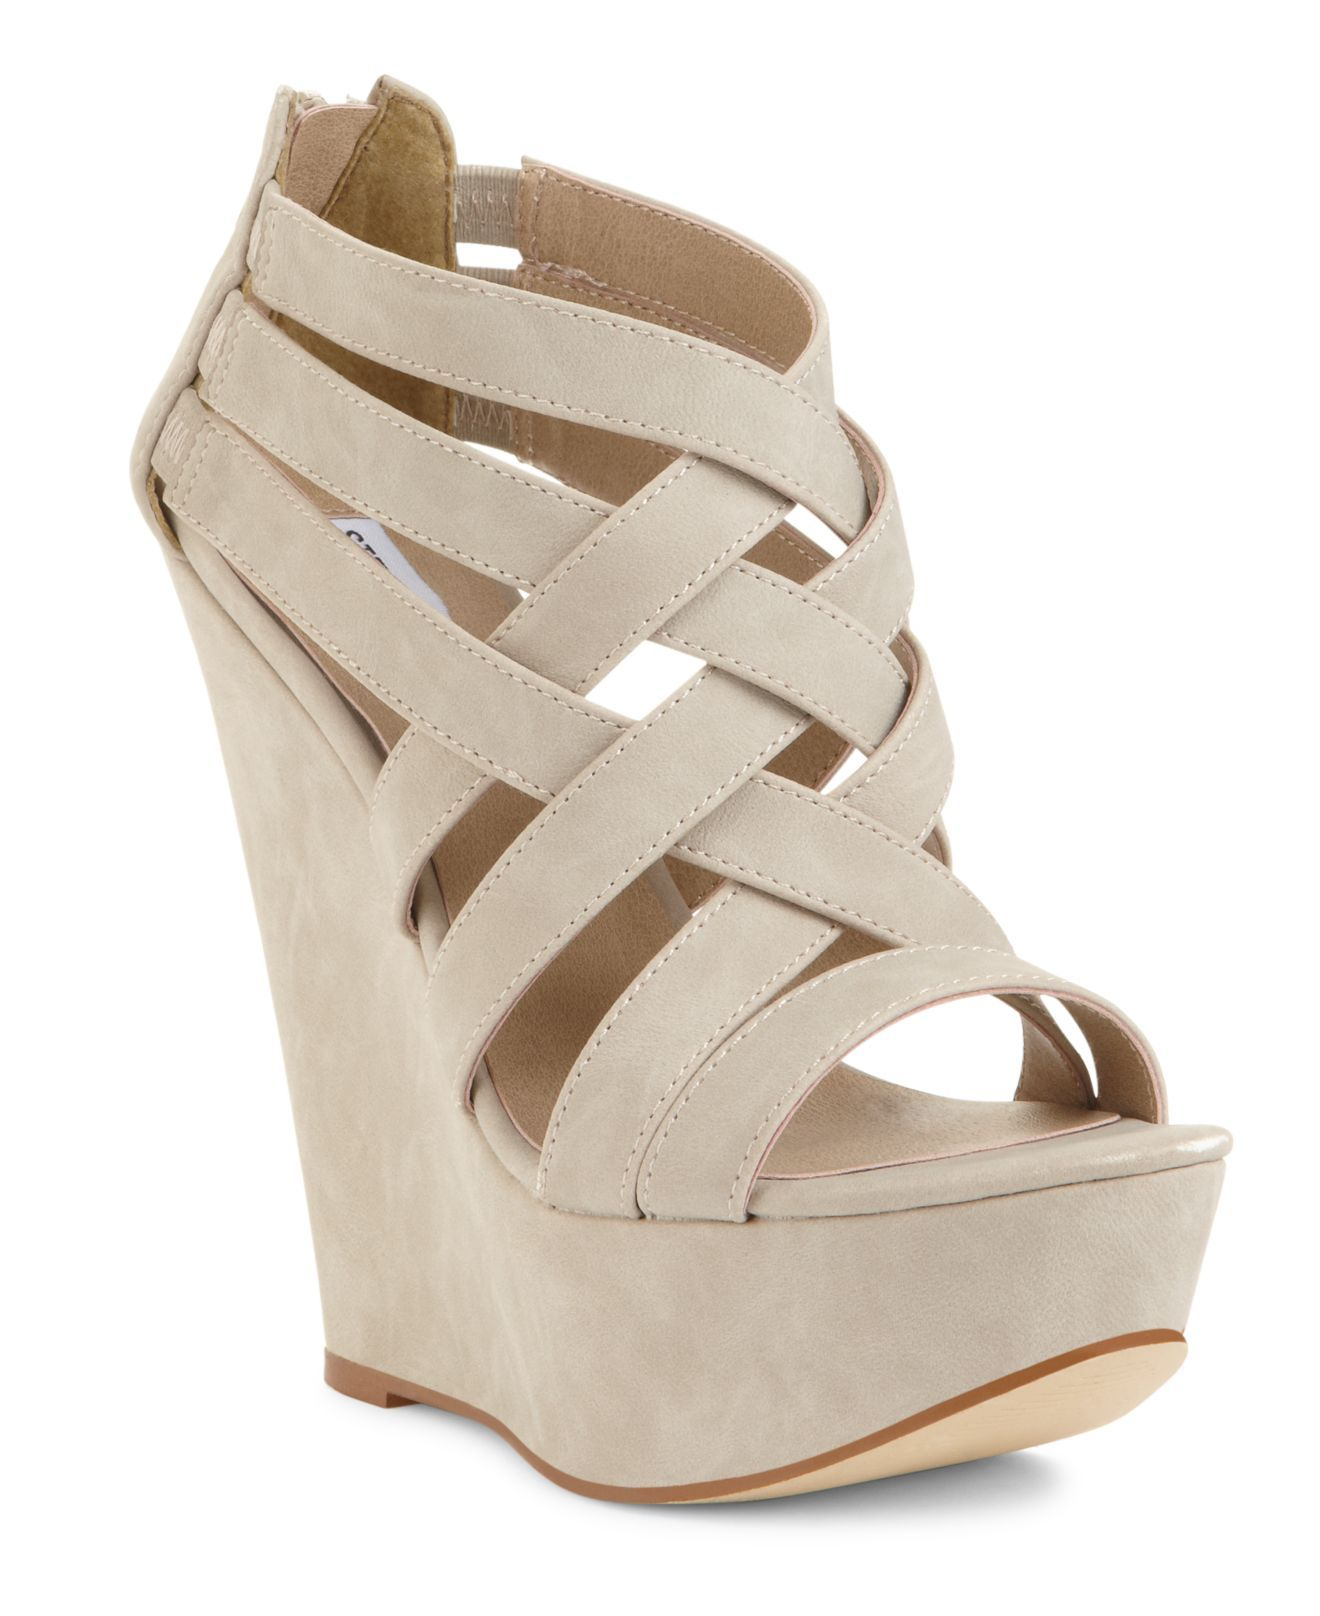 Steve Madden Women's Shoes, Xcess Platform Wedge Sandals ...